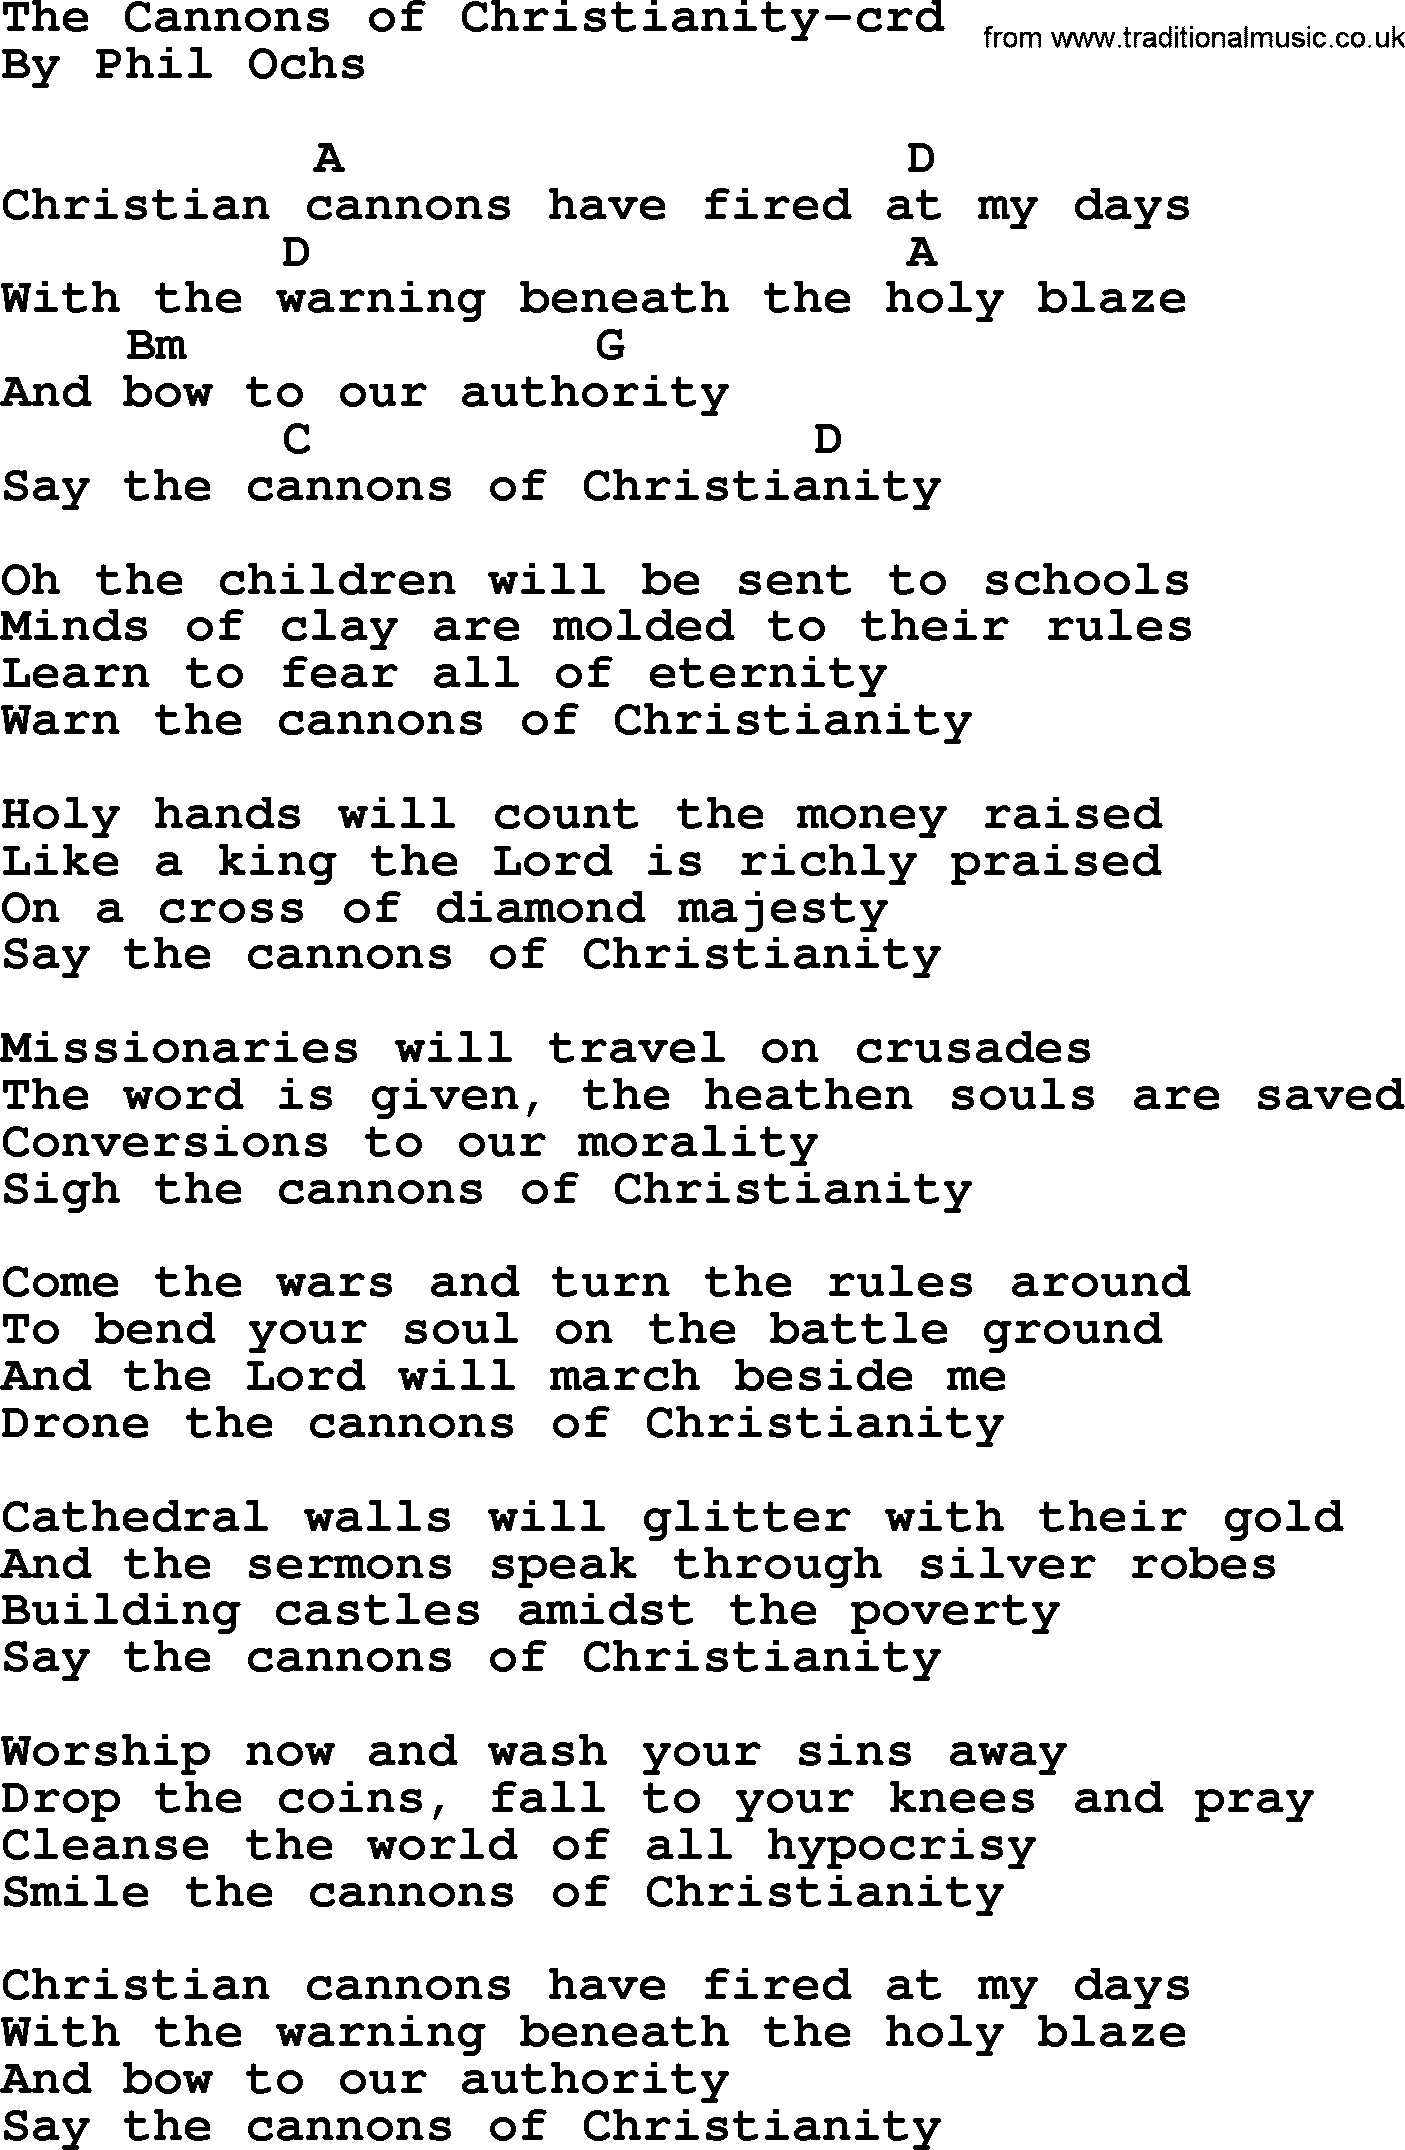 Phil ochs song the cannons of christianity by phil ochs lyrics phil ochs song the cannons of christianity by phil ochs lyrics and chords hexwebz Choice Image